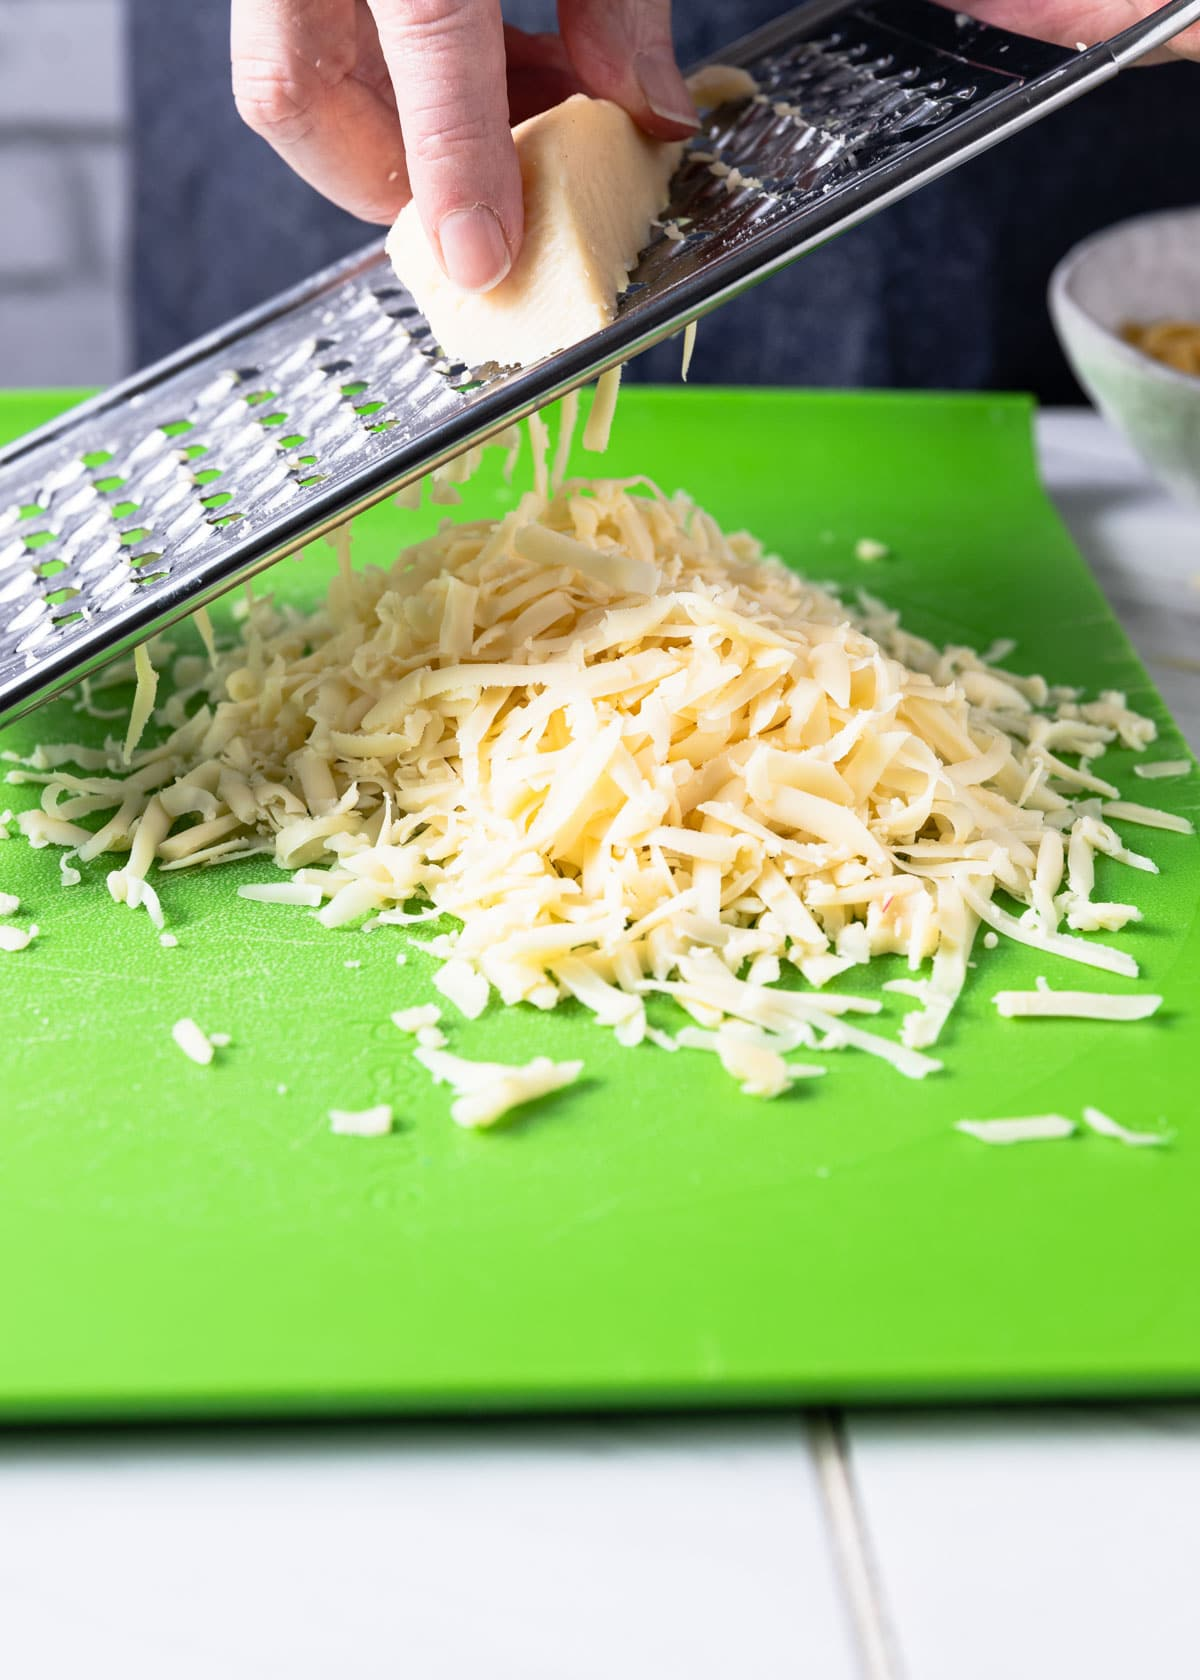 grating fontina cheese on a green cutting board